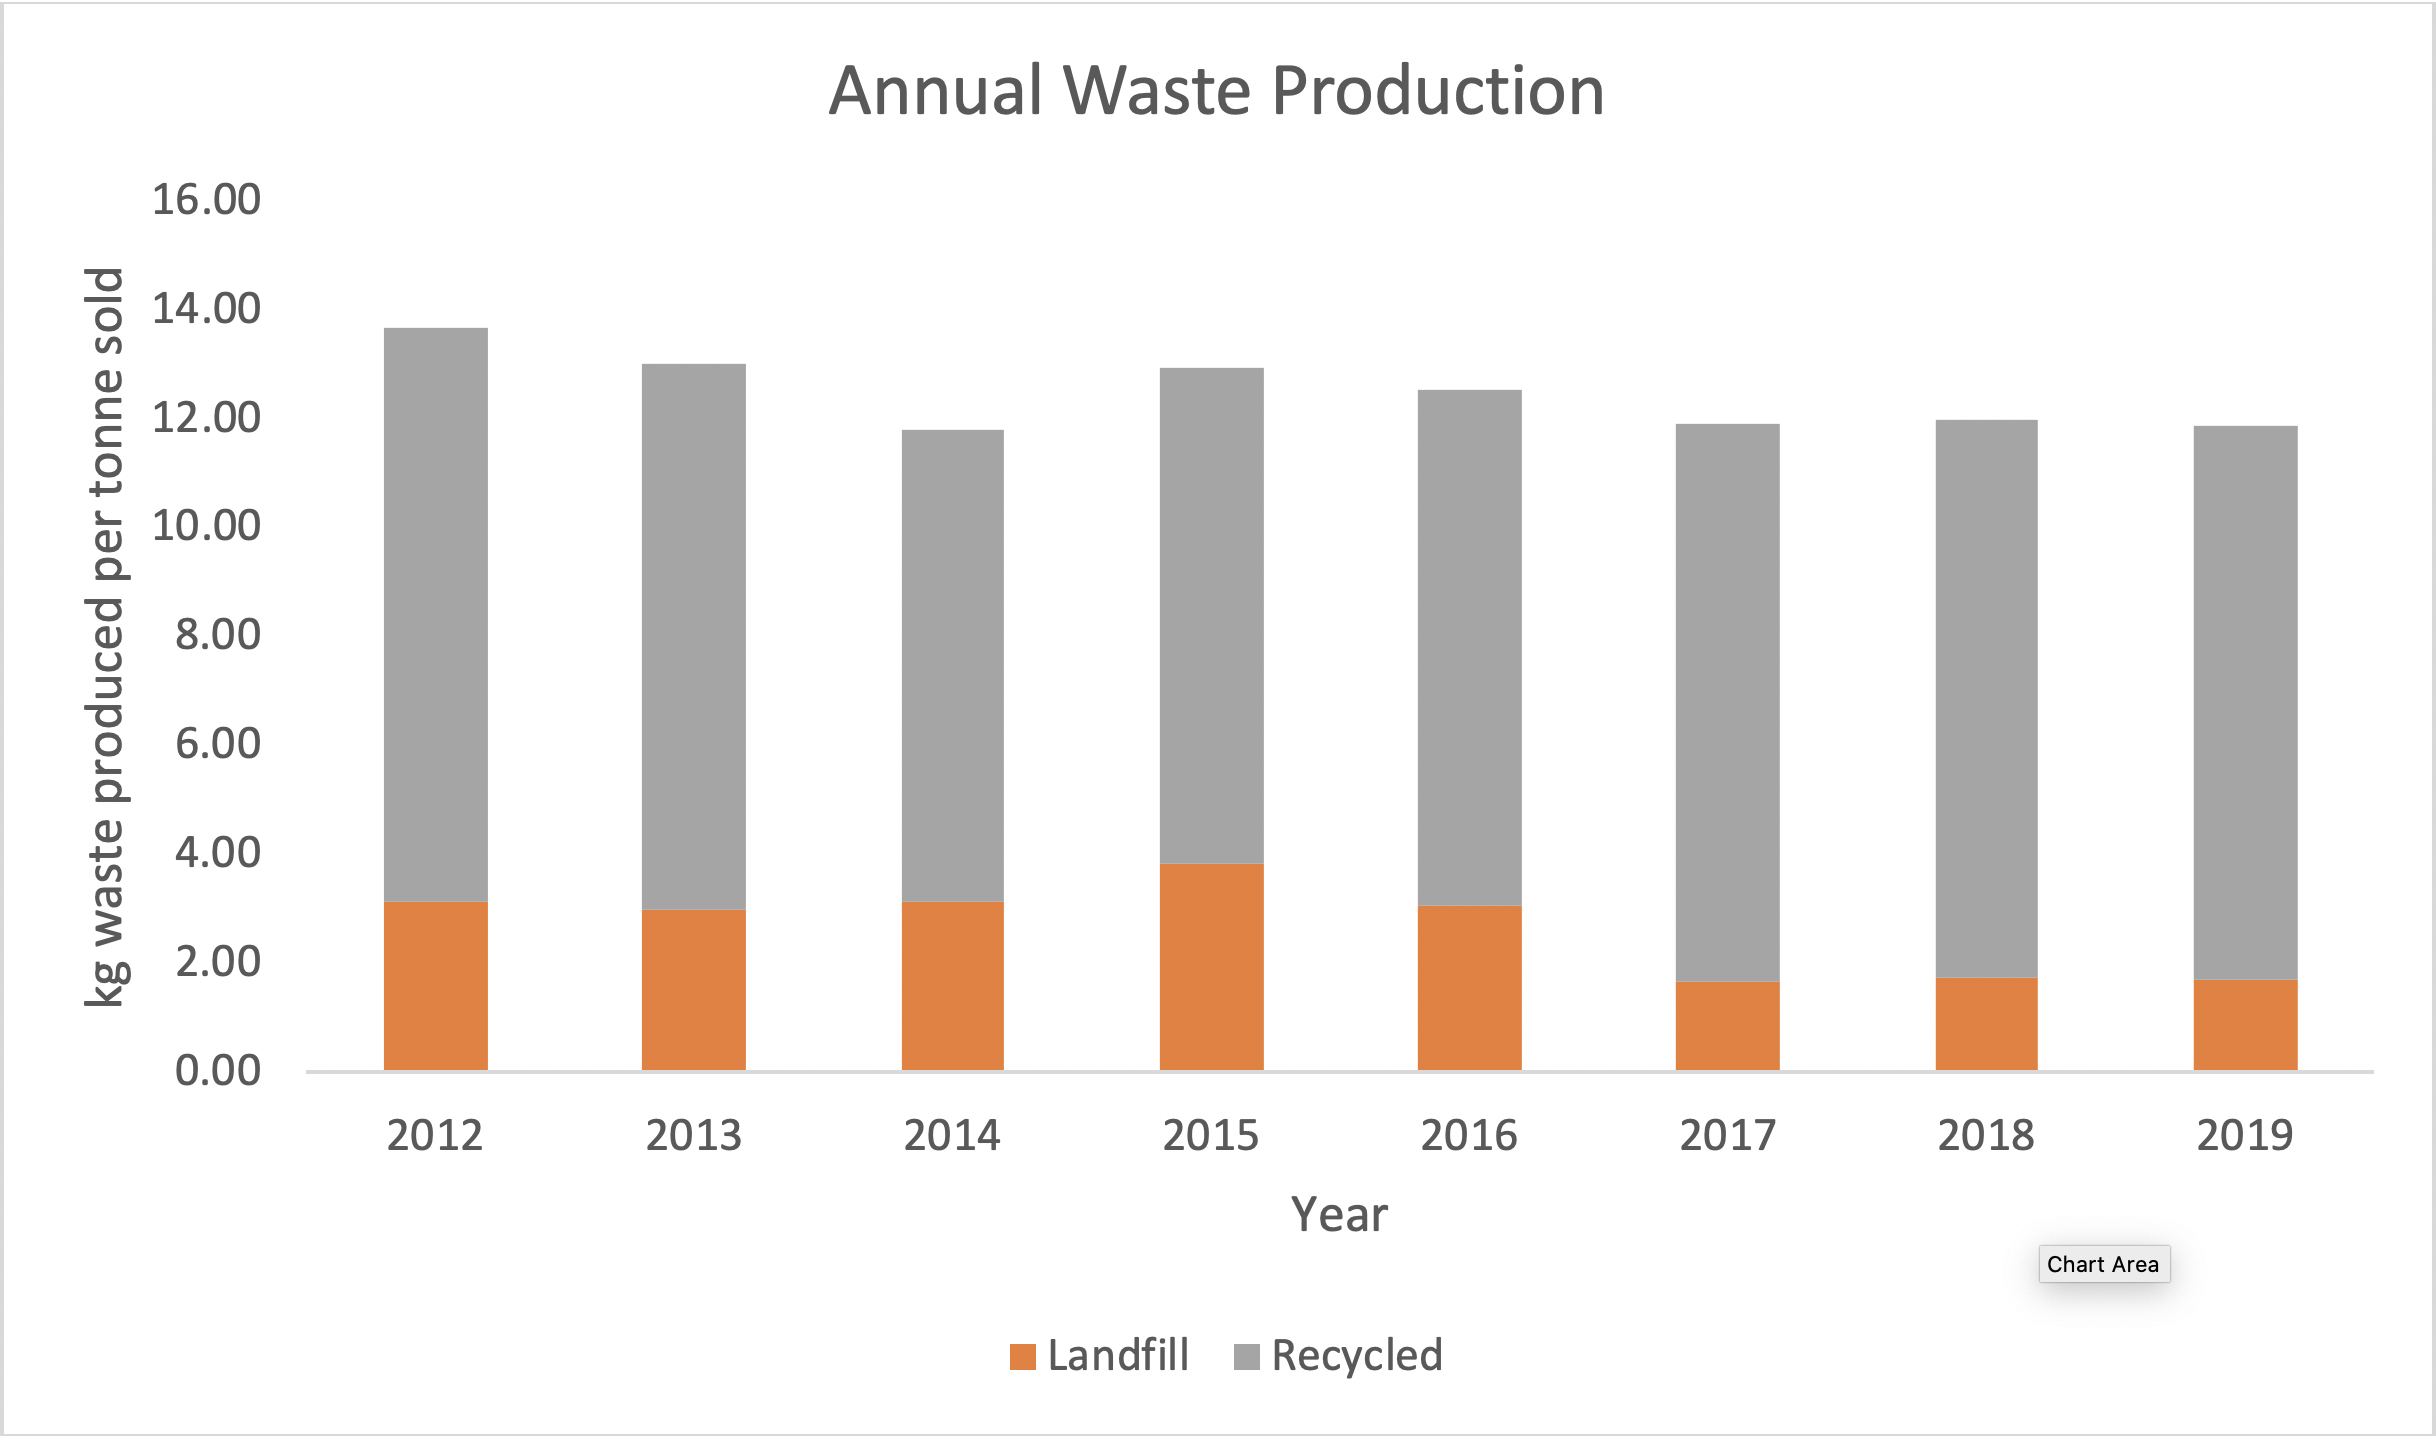 annual-waste-production-2019